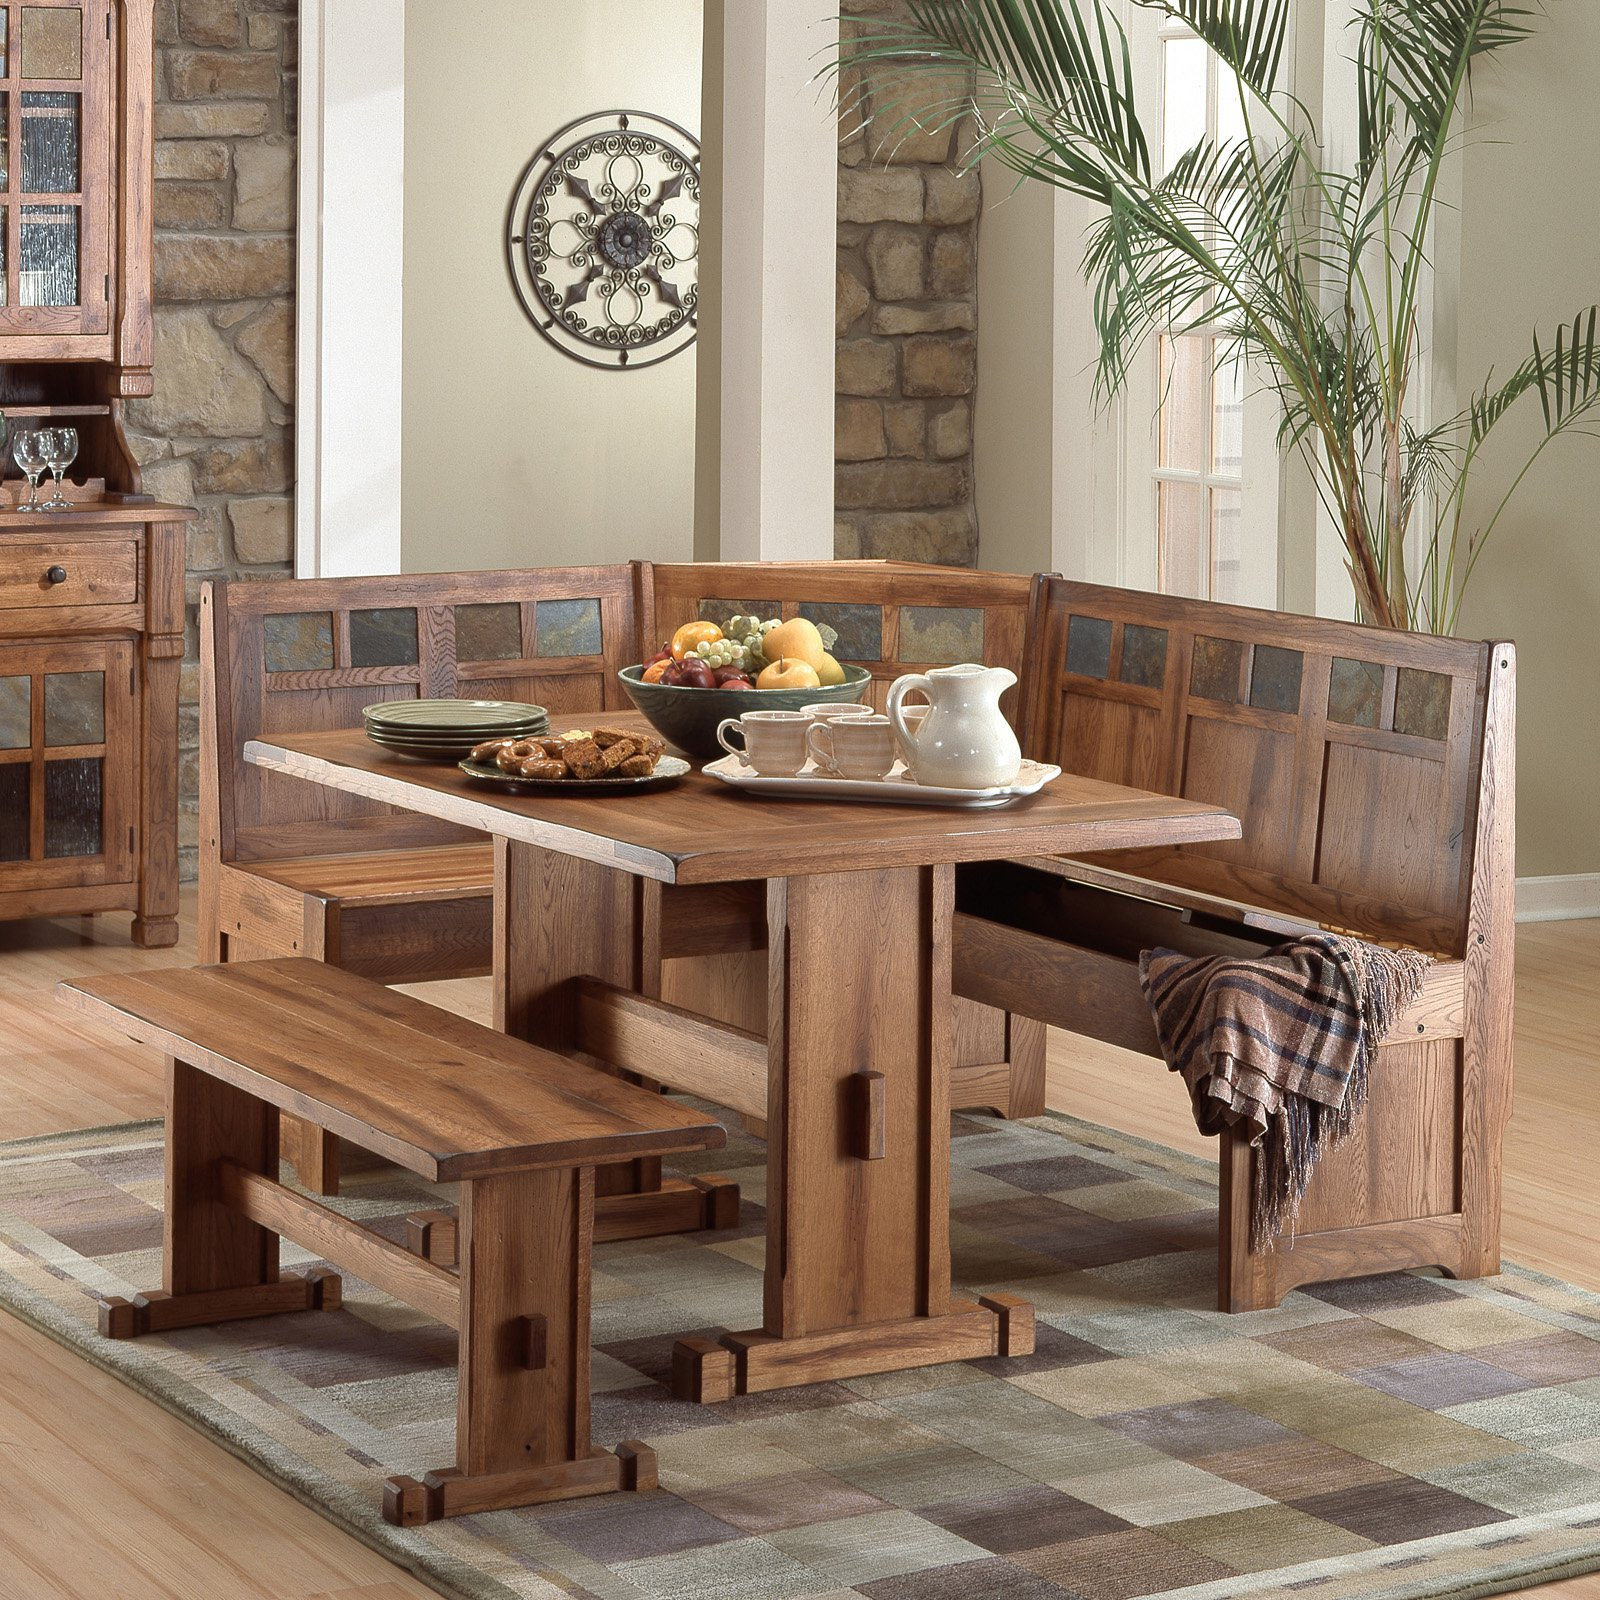 Sunny Designs Sedona 4 Piece Breakfast Nook Set